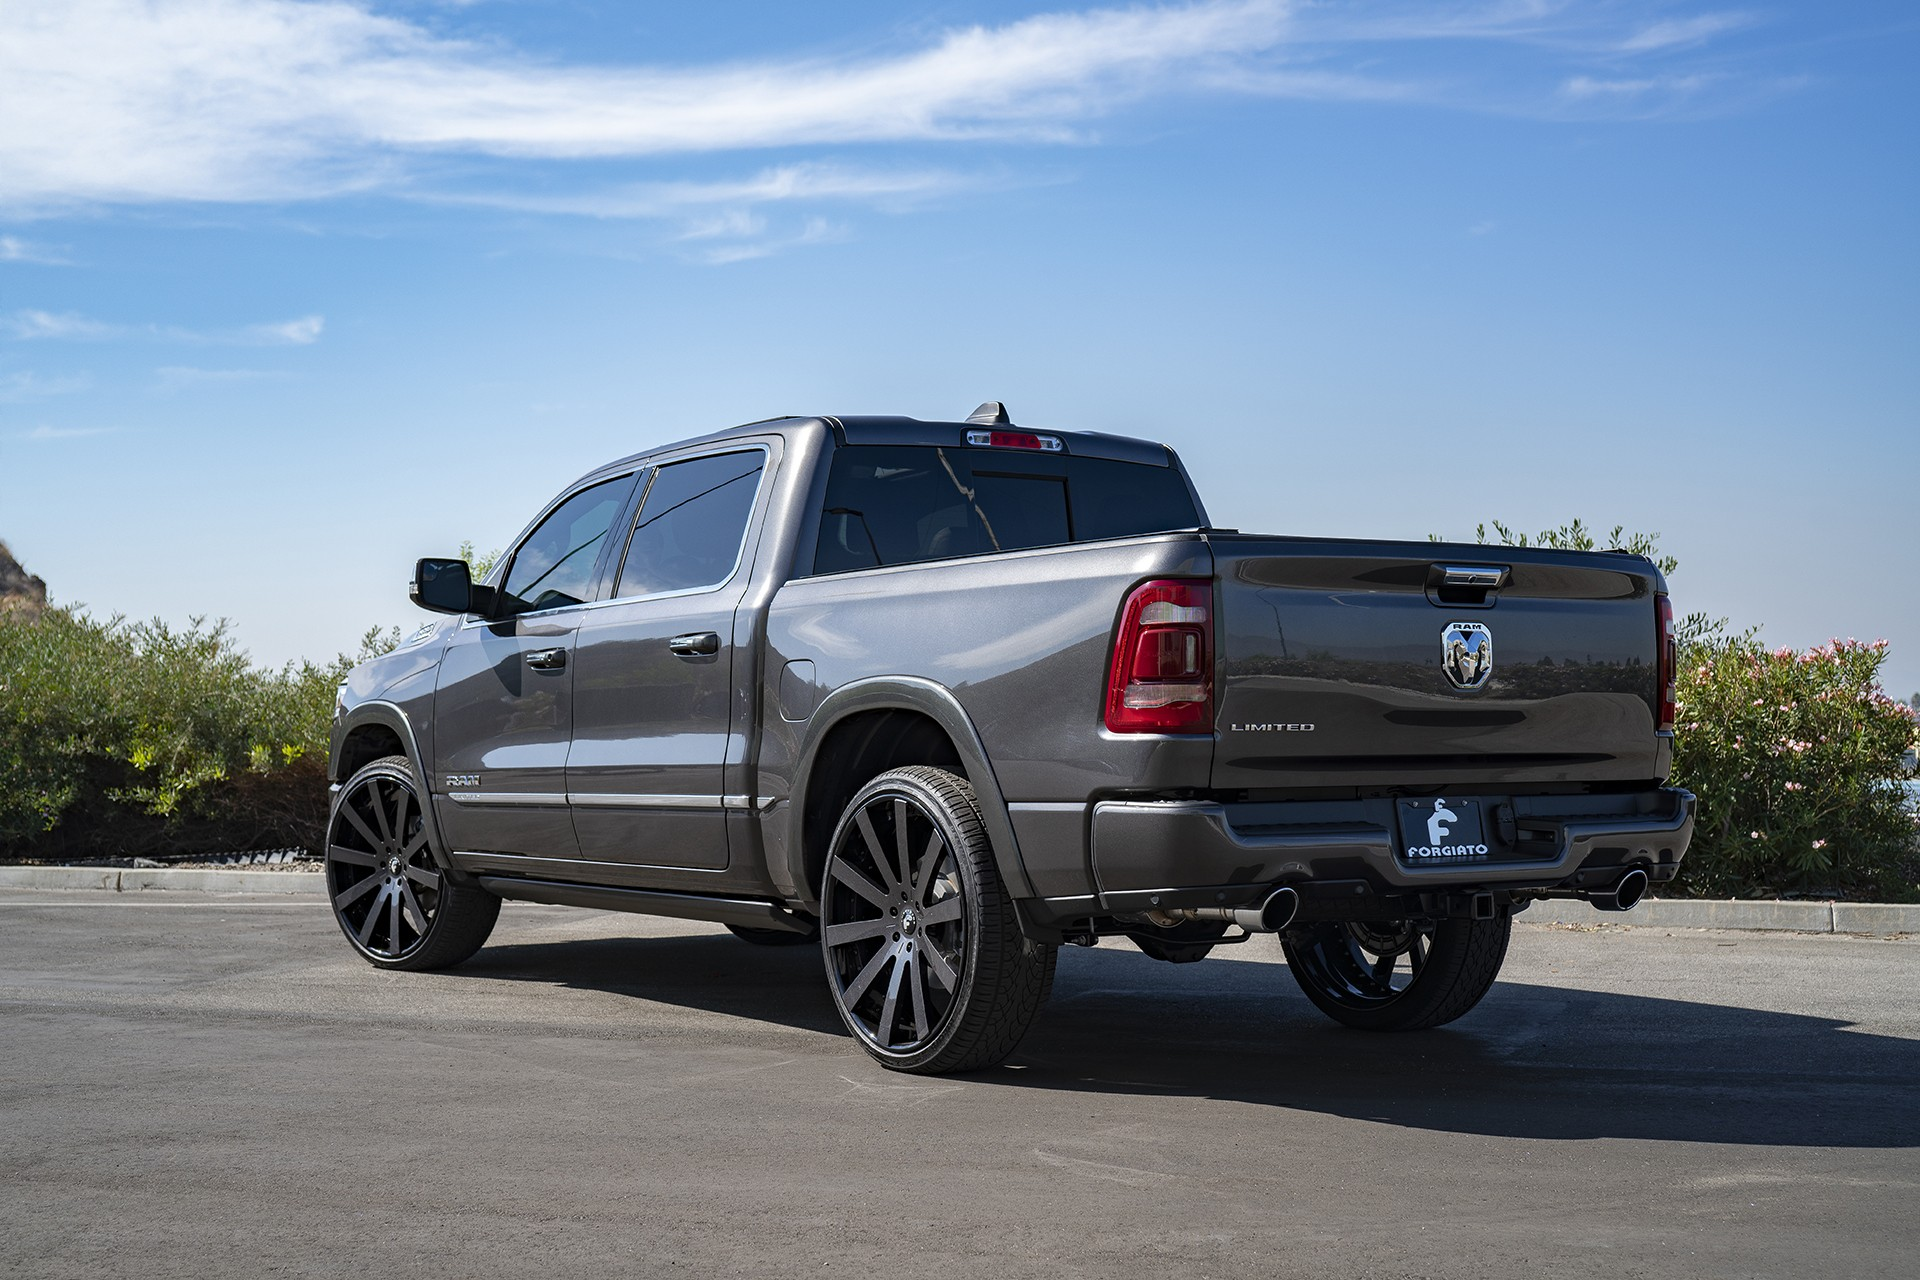 Shaquille O'Neal Tunes His 2019 Ram 1500 With Forgiato Wheels - autoevolution